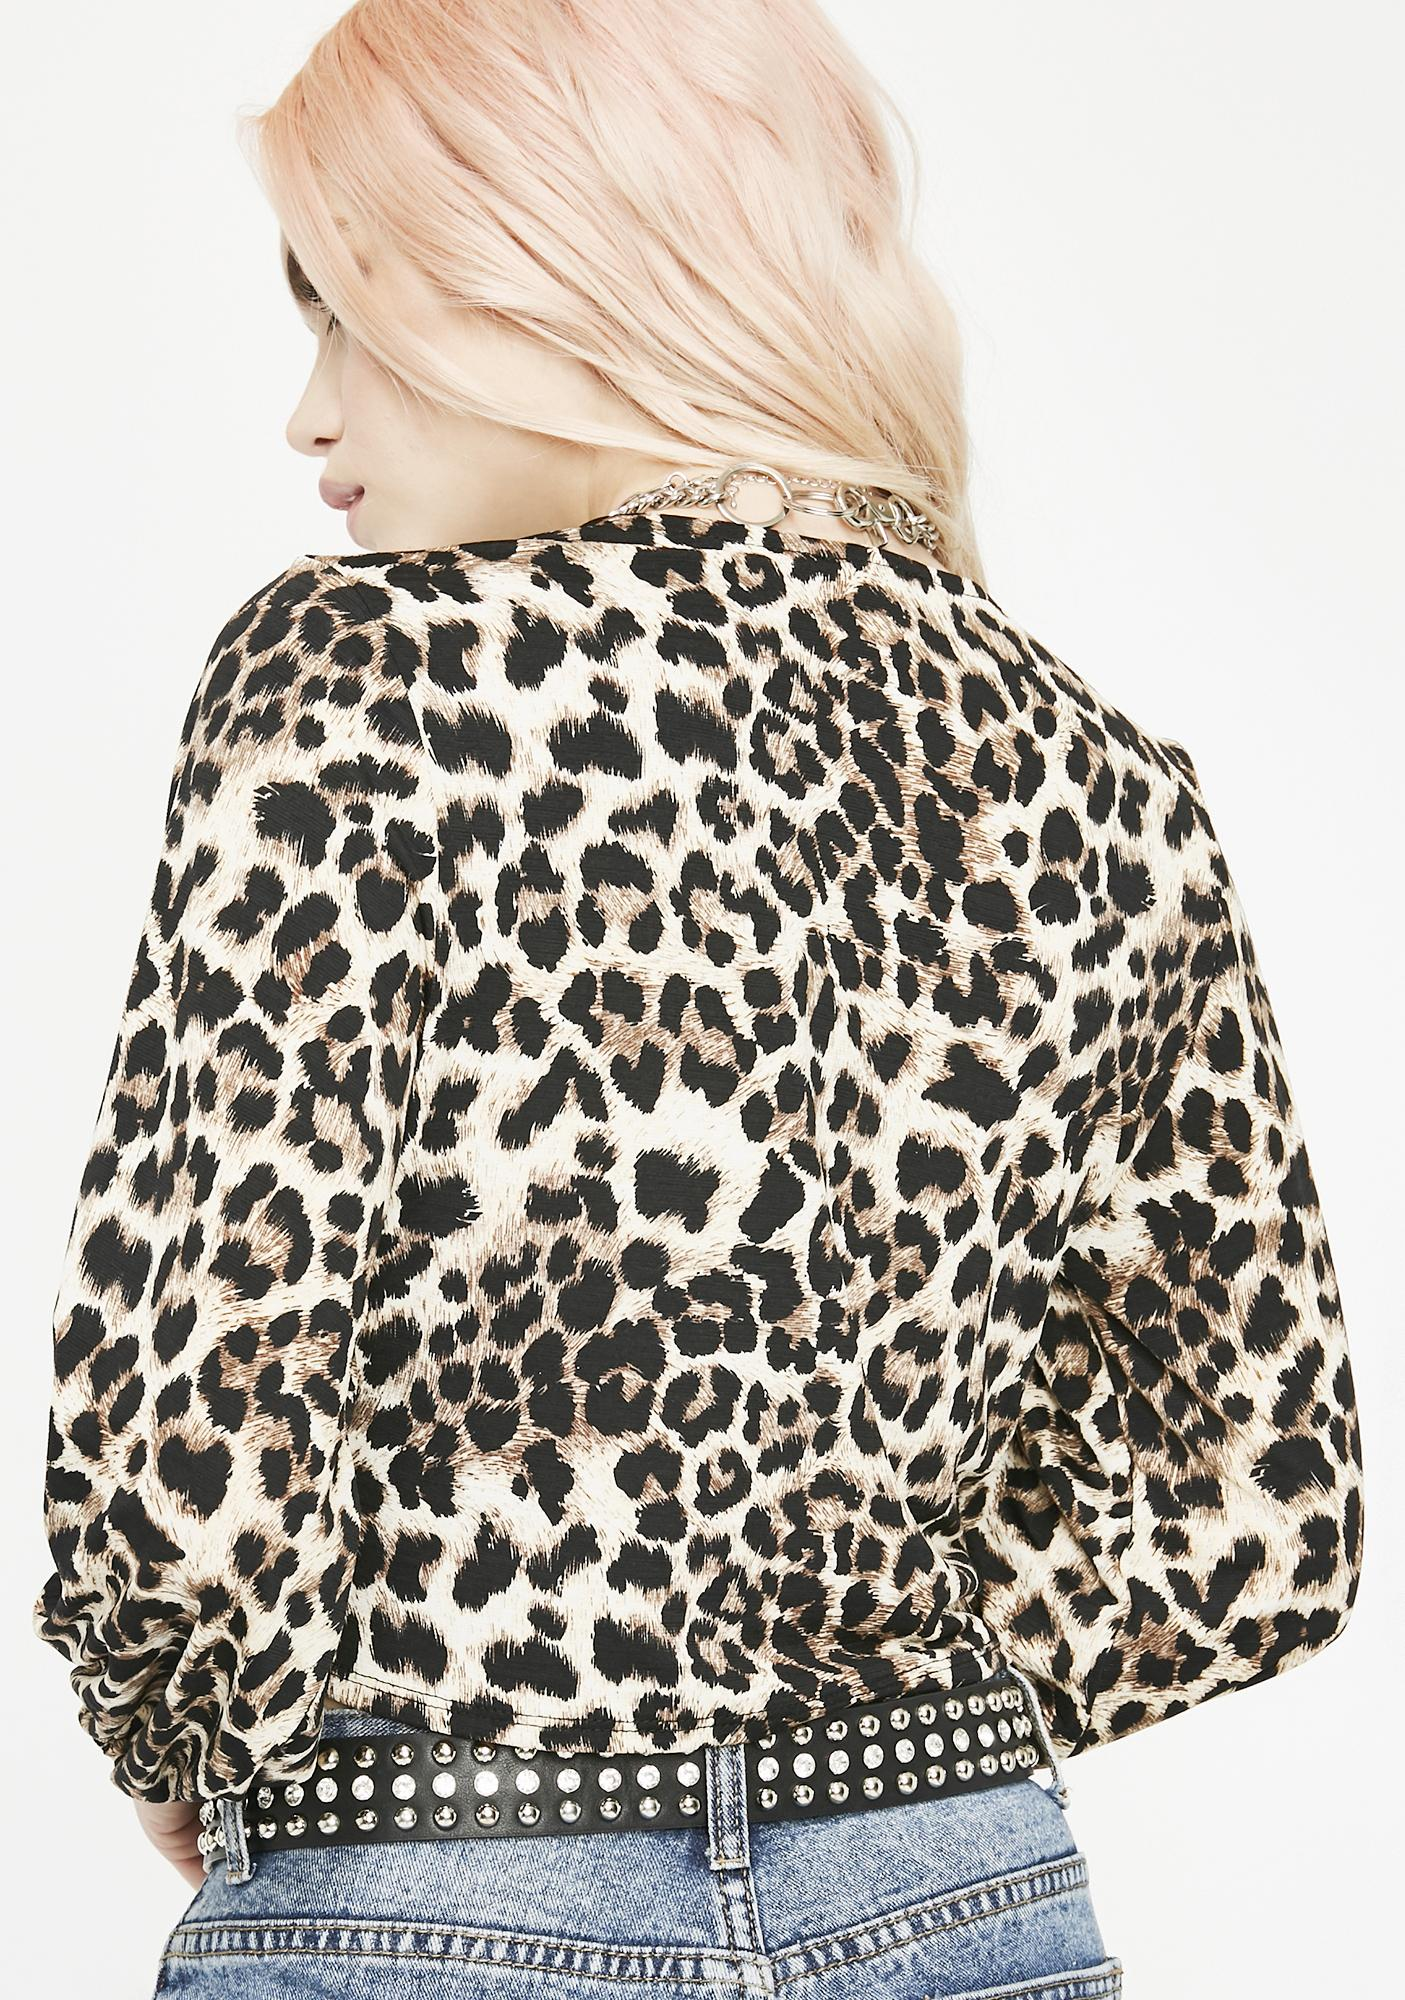 Thrill Seeker Leopard Top